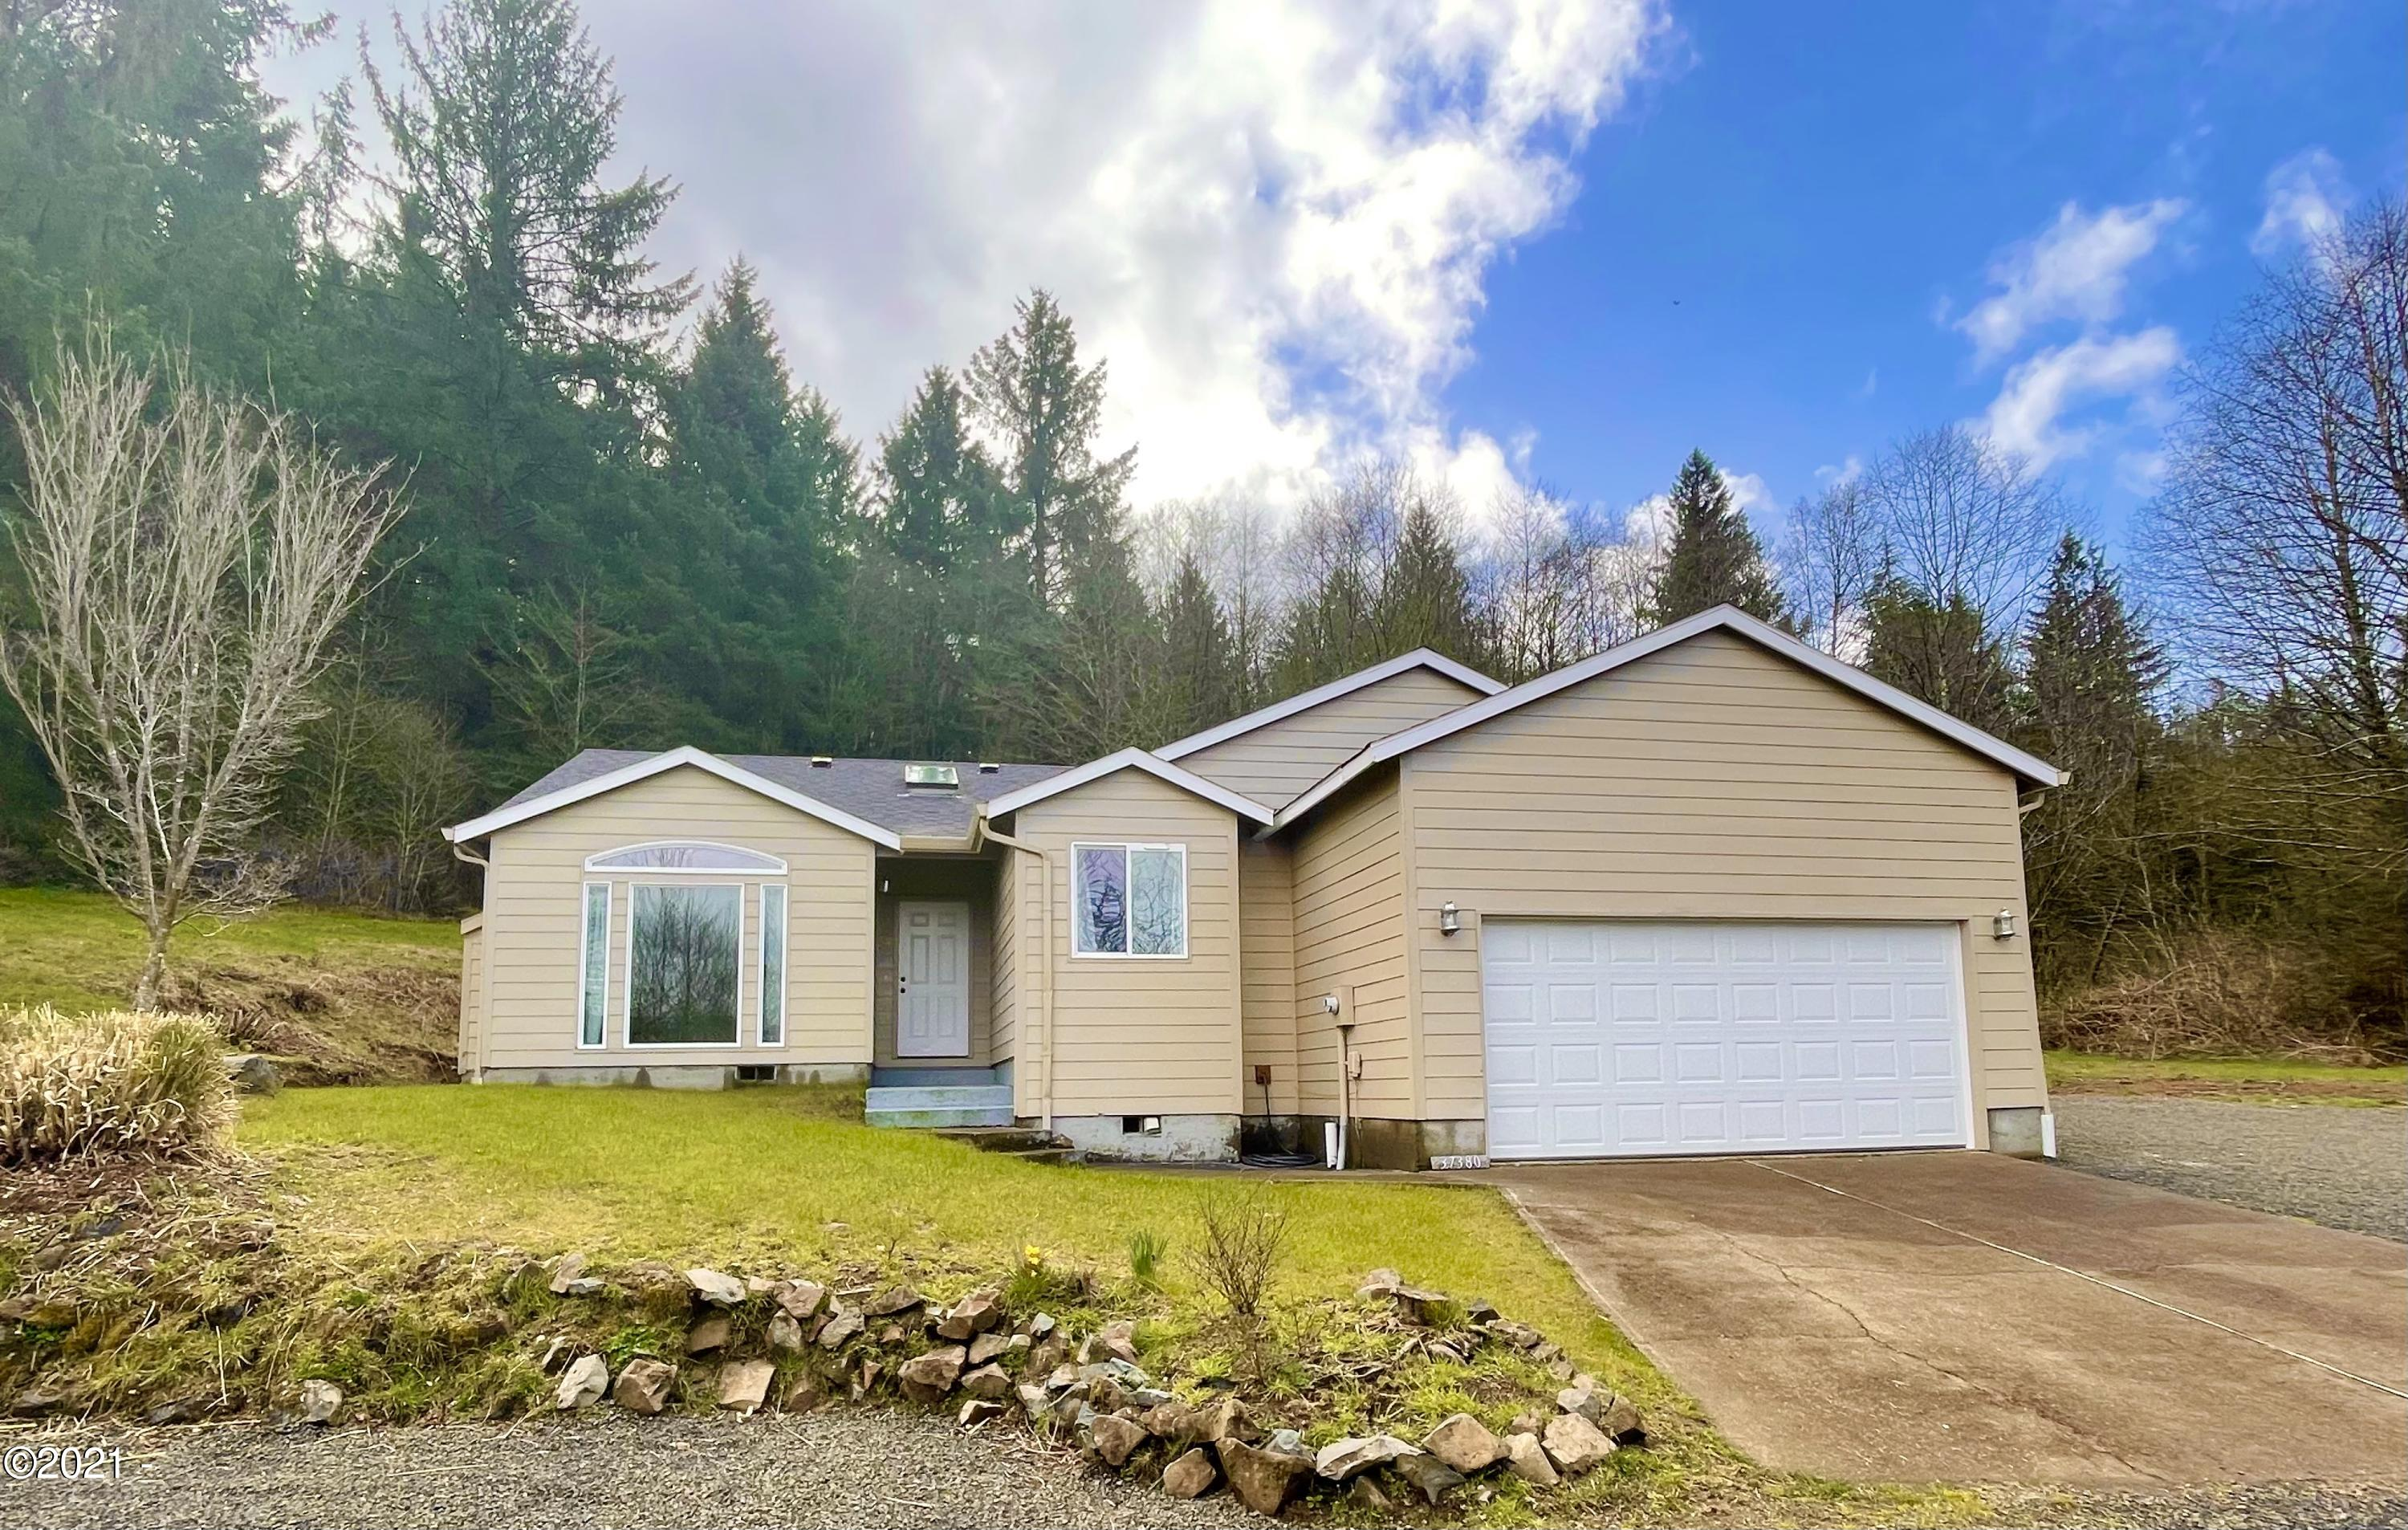 37380 Resort Drive, Pacific City, OR 97135 - Welcome Home!